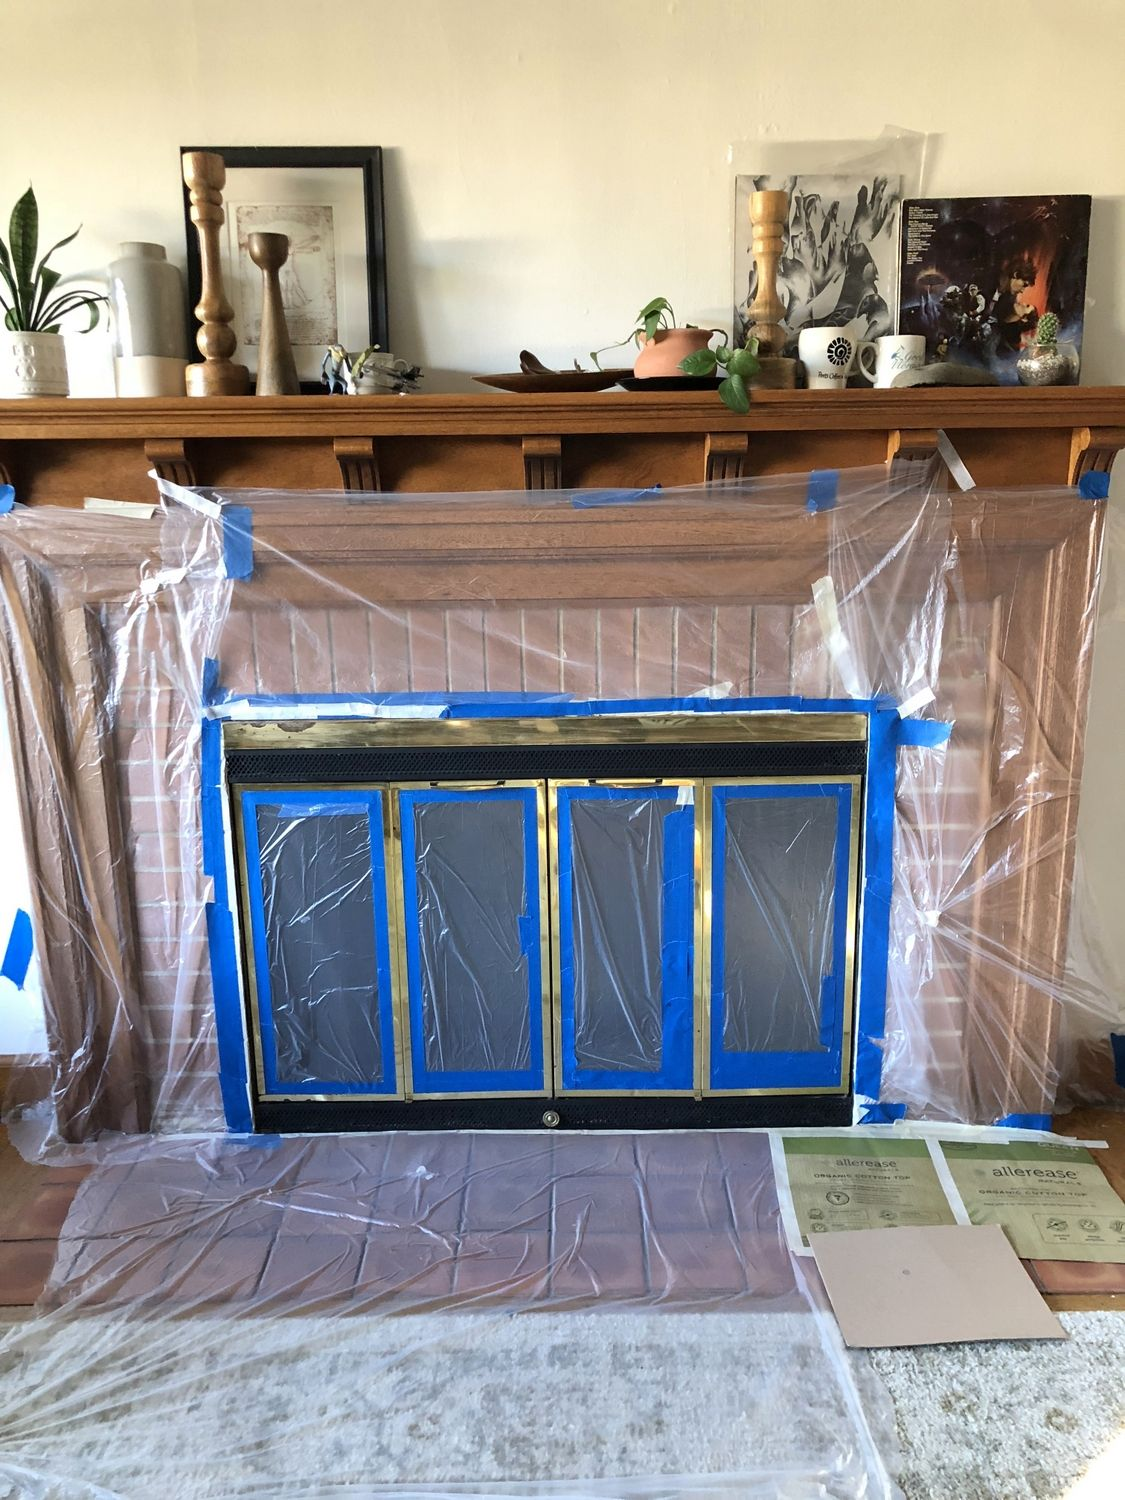 How To Paint A Brass Fireplace Screen Without Removing It In